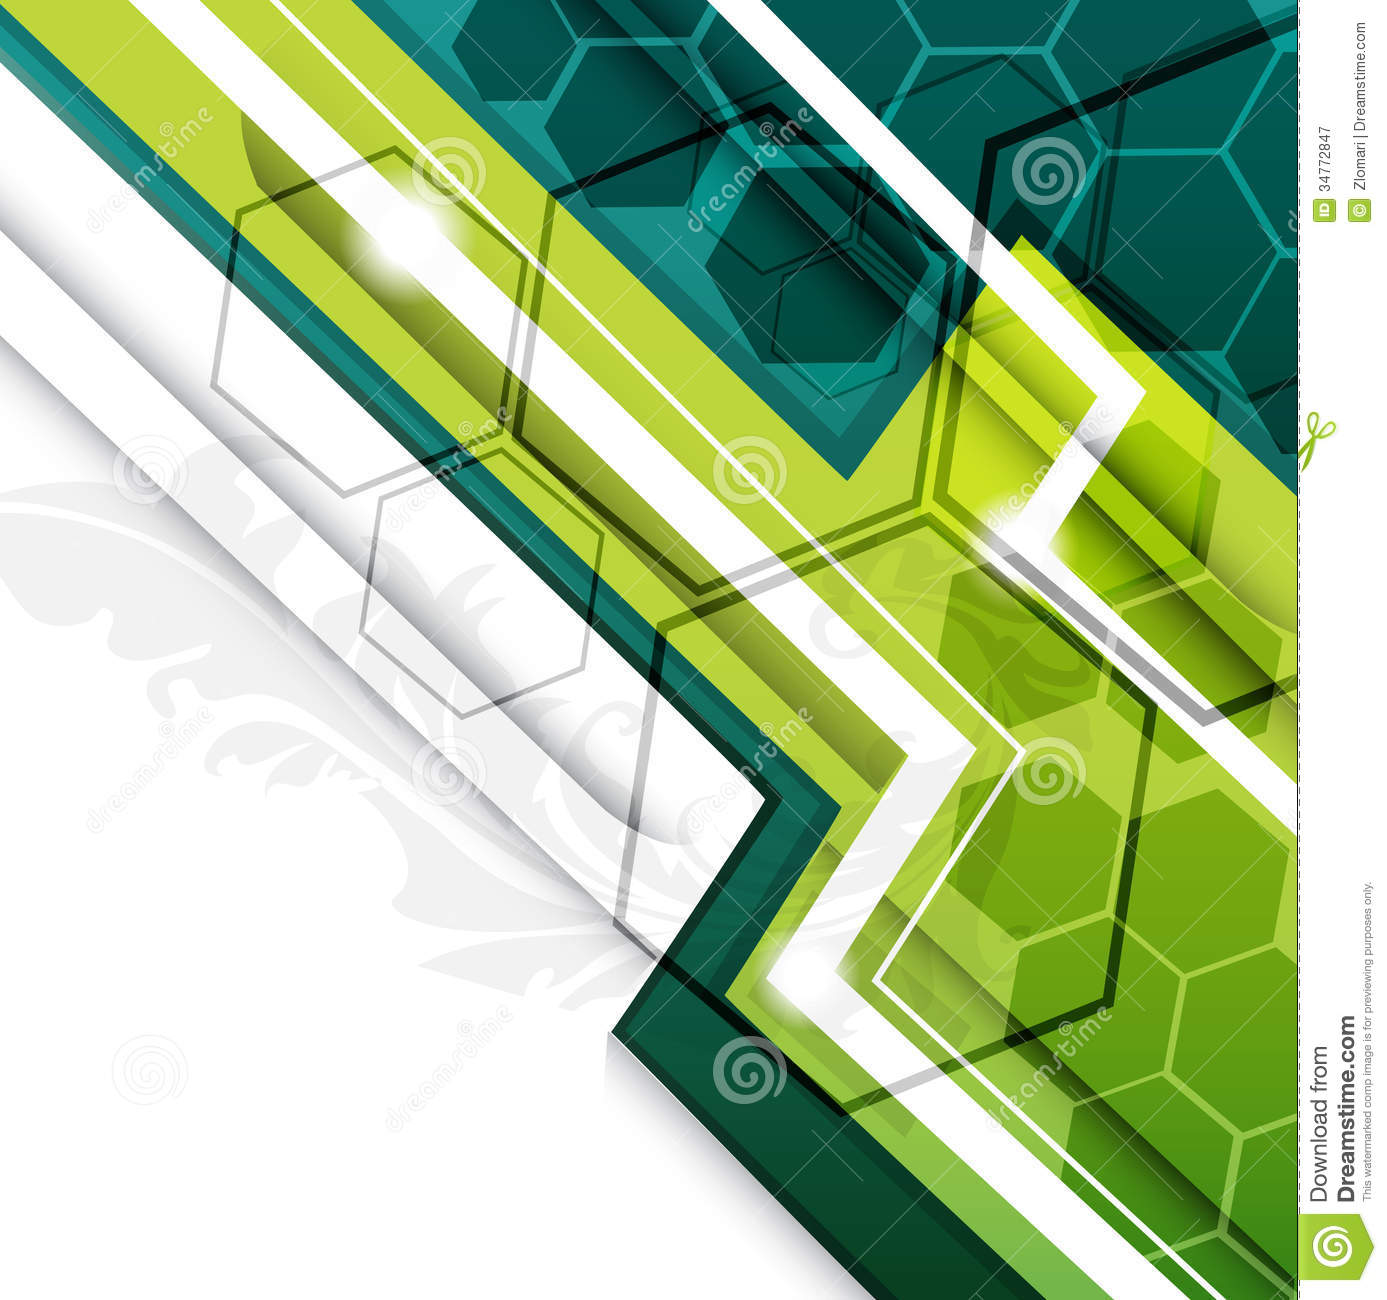 Abstract Vector Design Royalty Free Stock Photography - Image ...